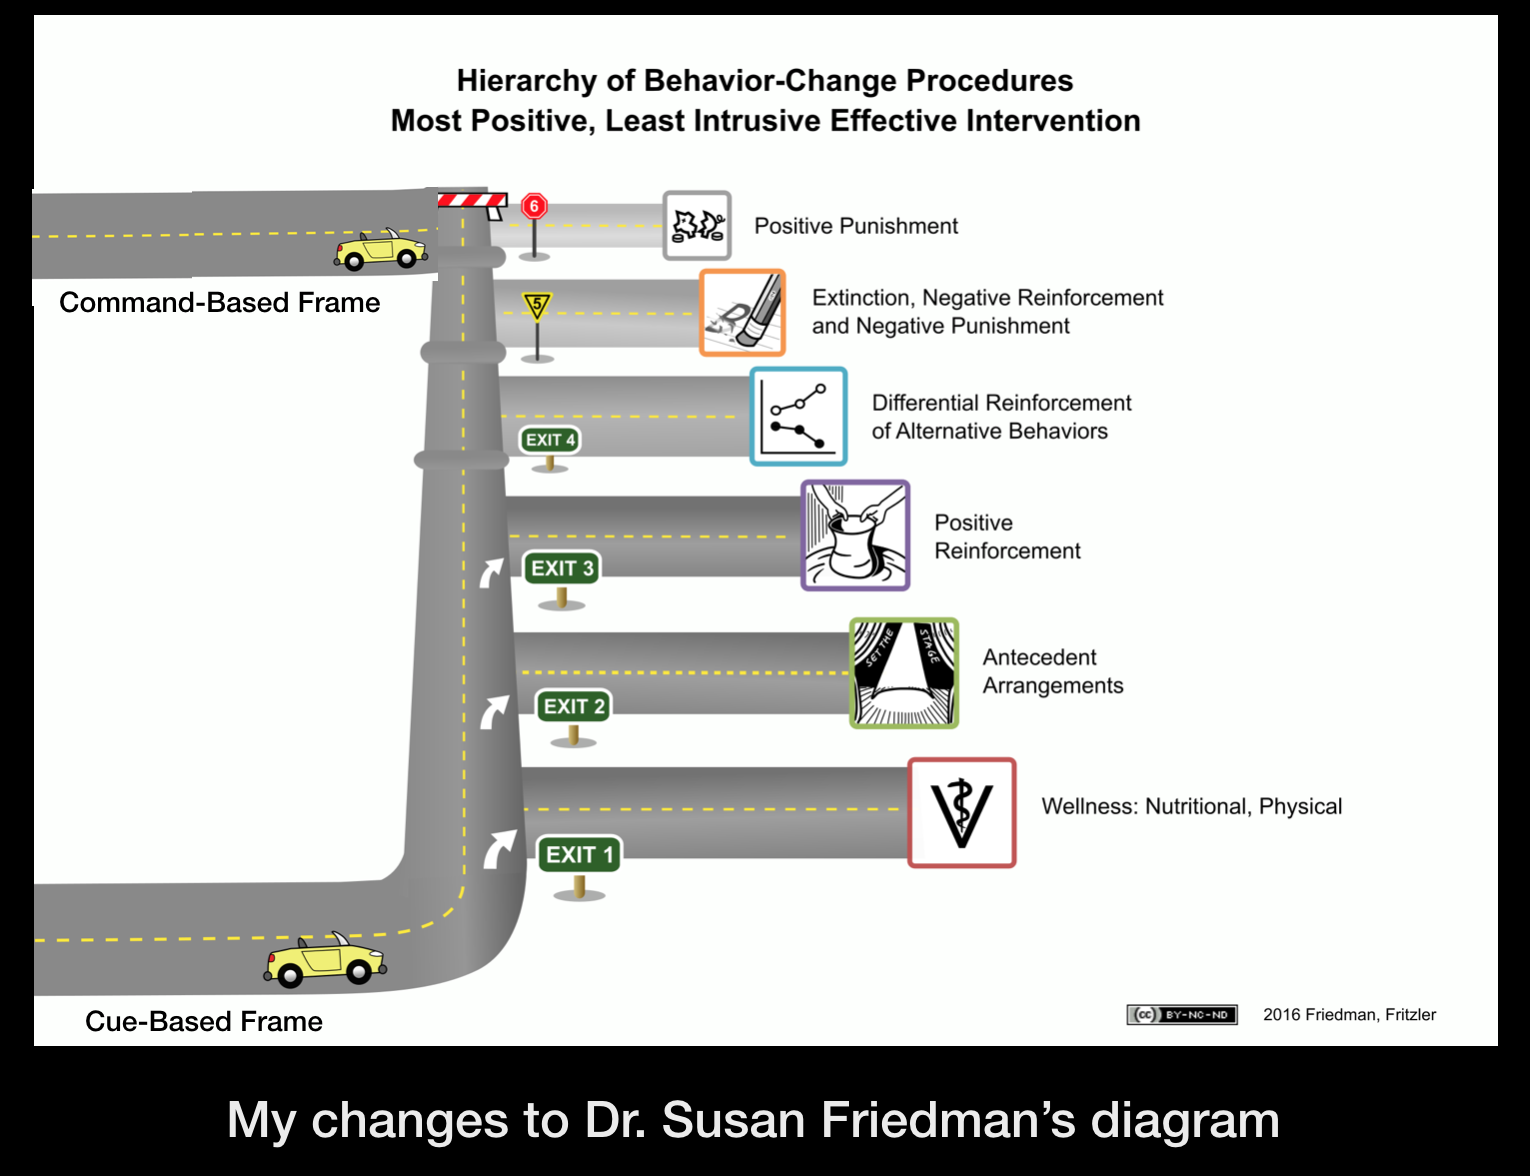 My Changes To Procedural Changes slide